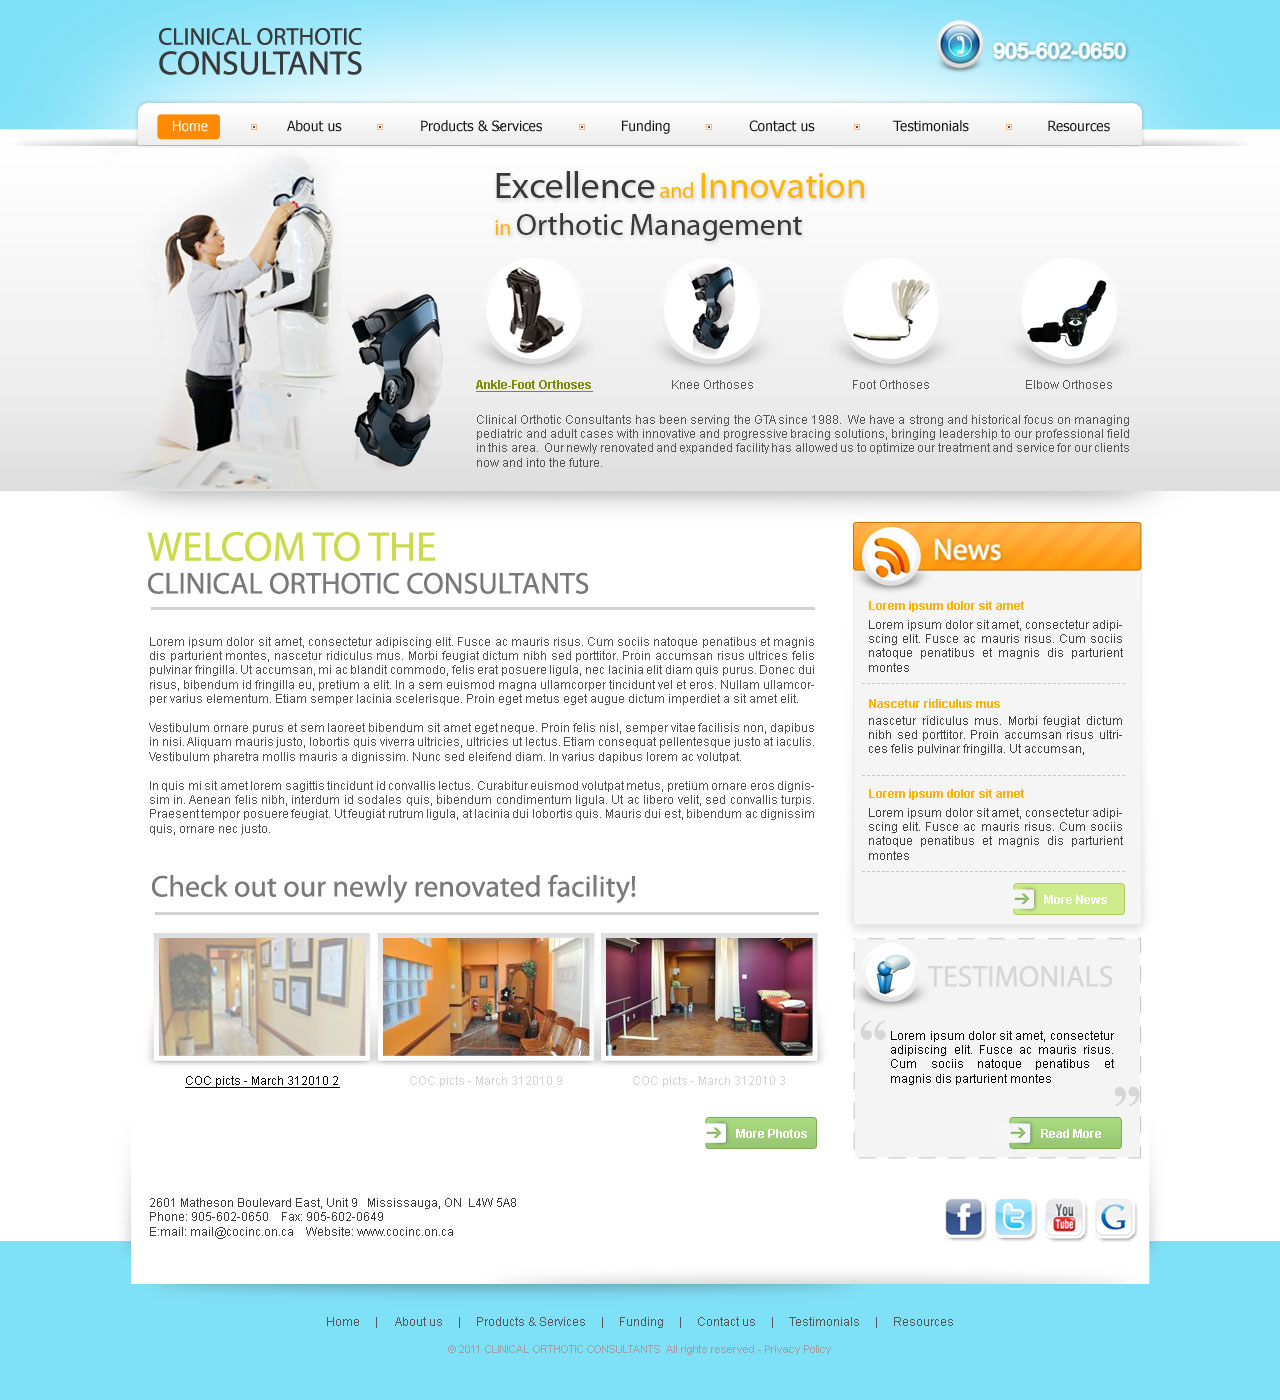 Clinical Orthotic Consultants